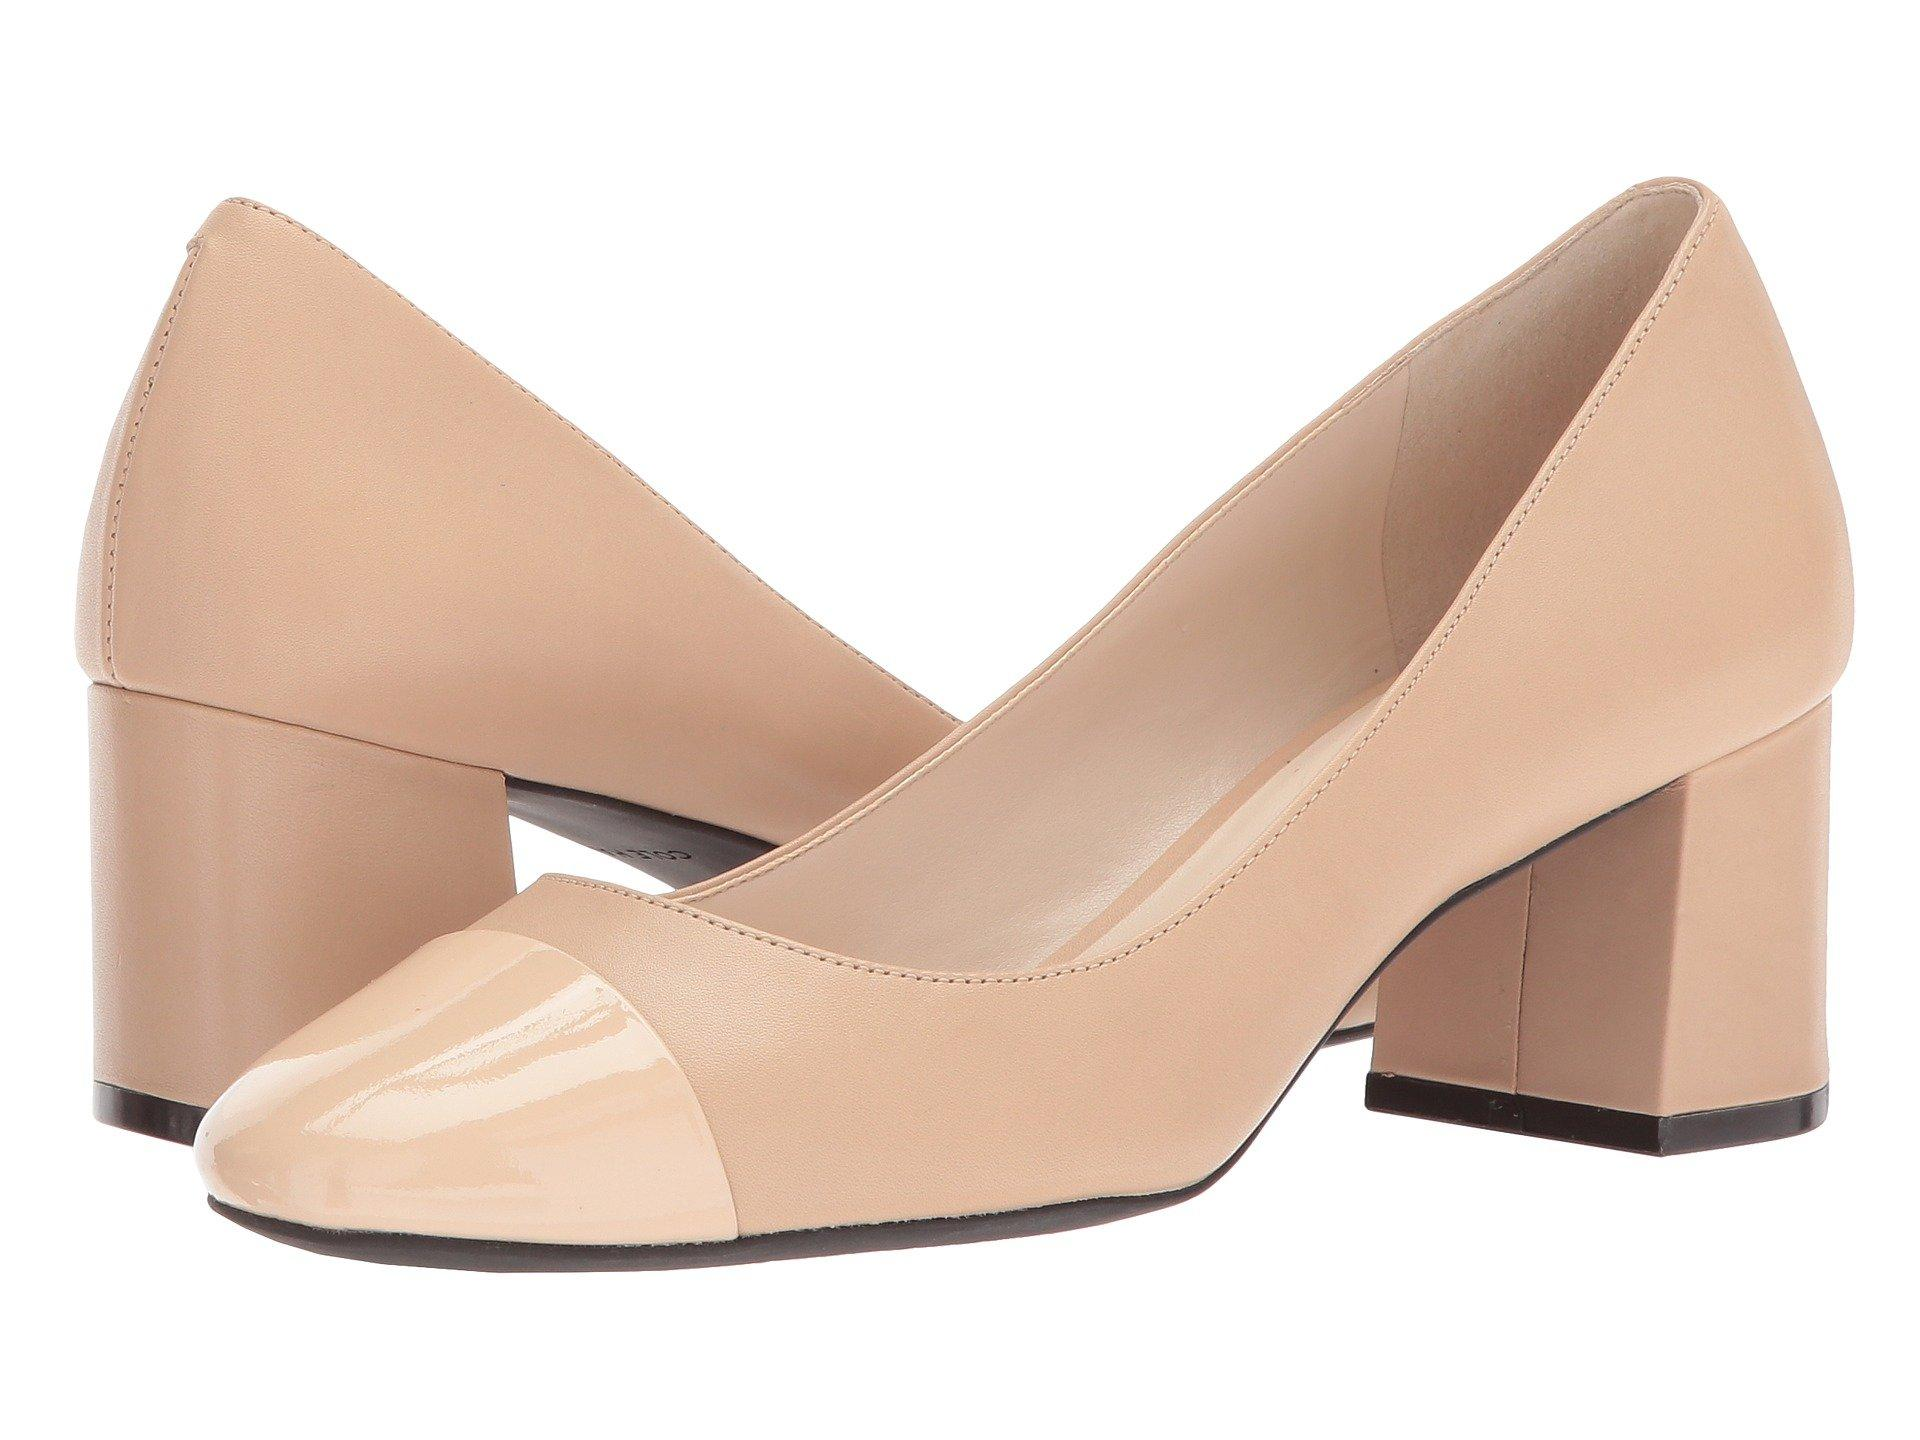 c7db02dbed5 Dawna Grand Pump 55Mm Ii, Nude Leather/Patent